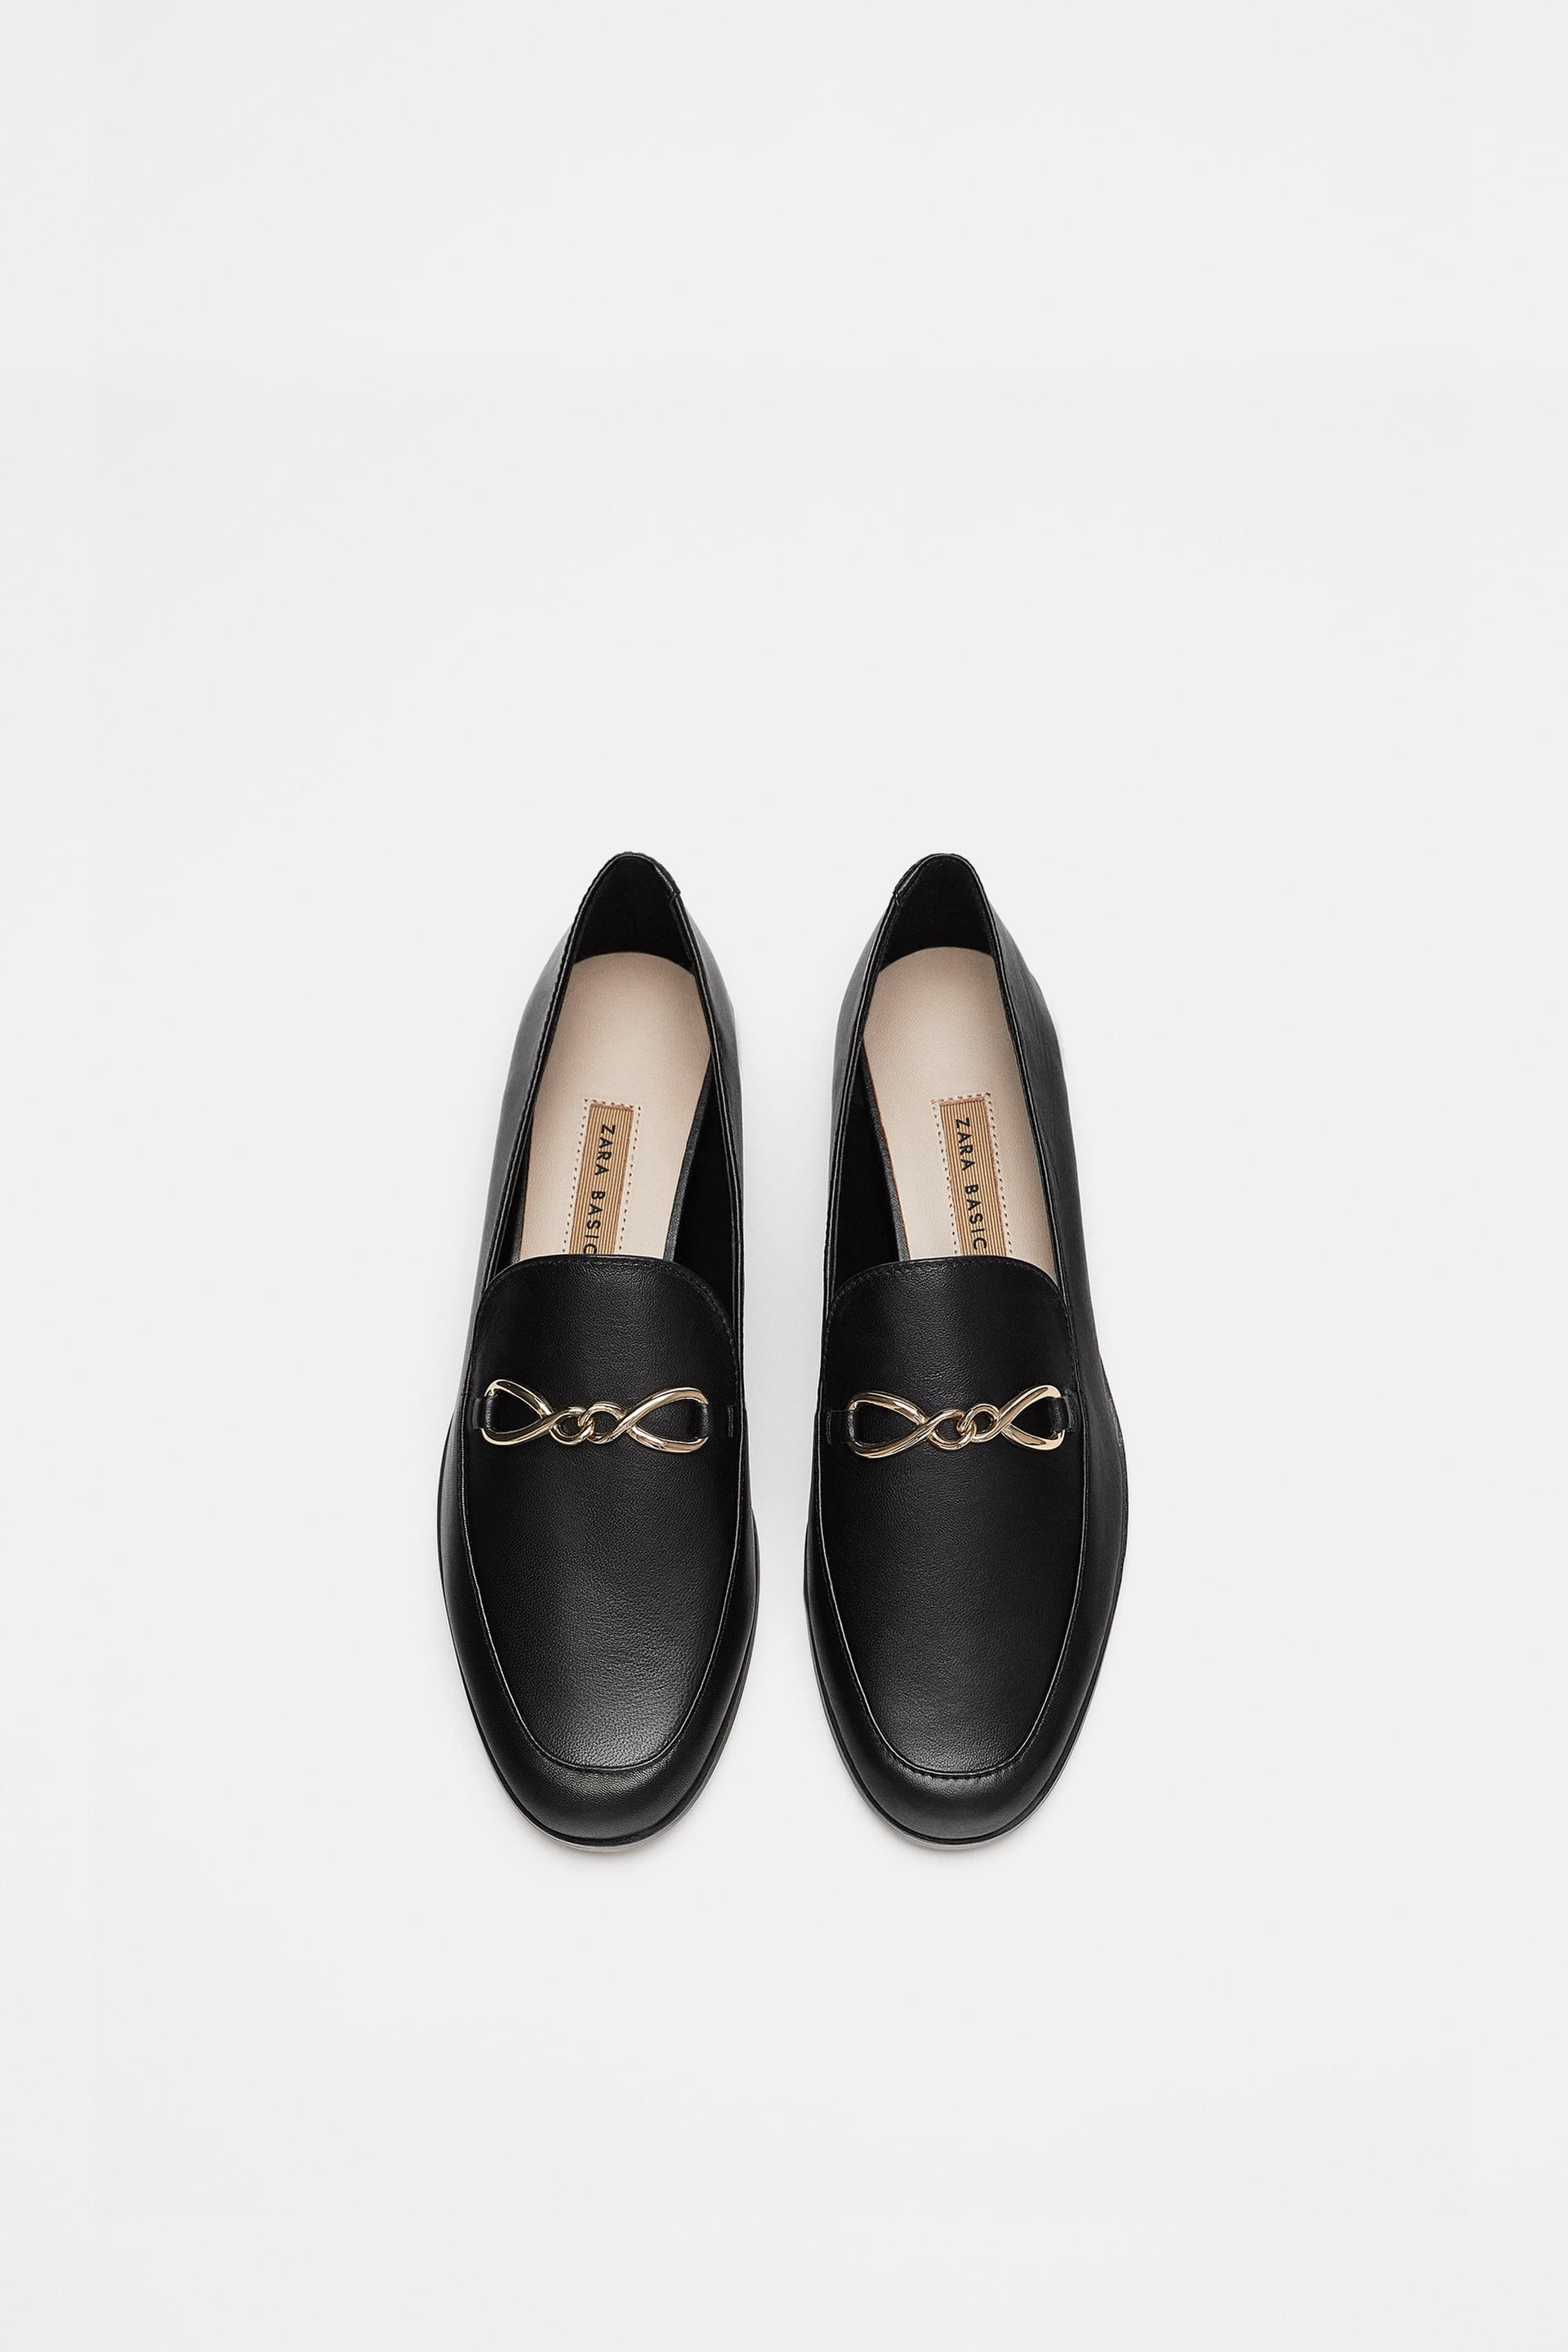 Image 4 Of Leather Loafers From Zara Latest Ladies Shoes Loafers Leather Shoes Woman